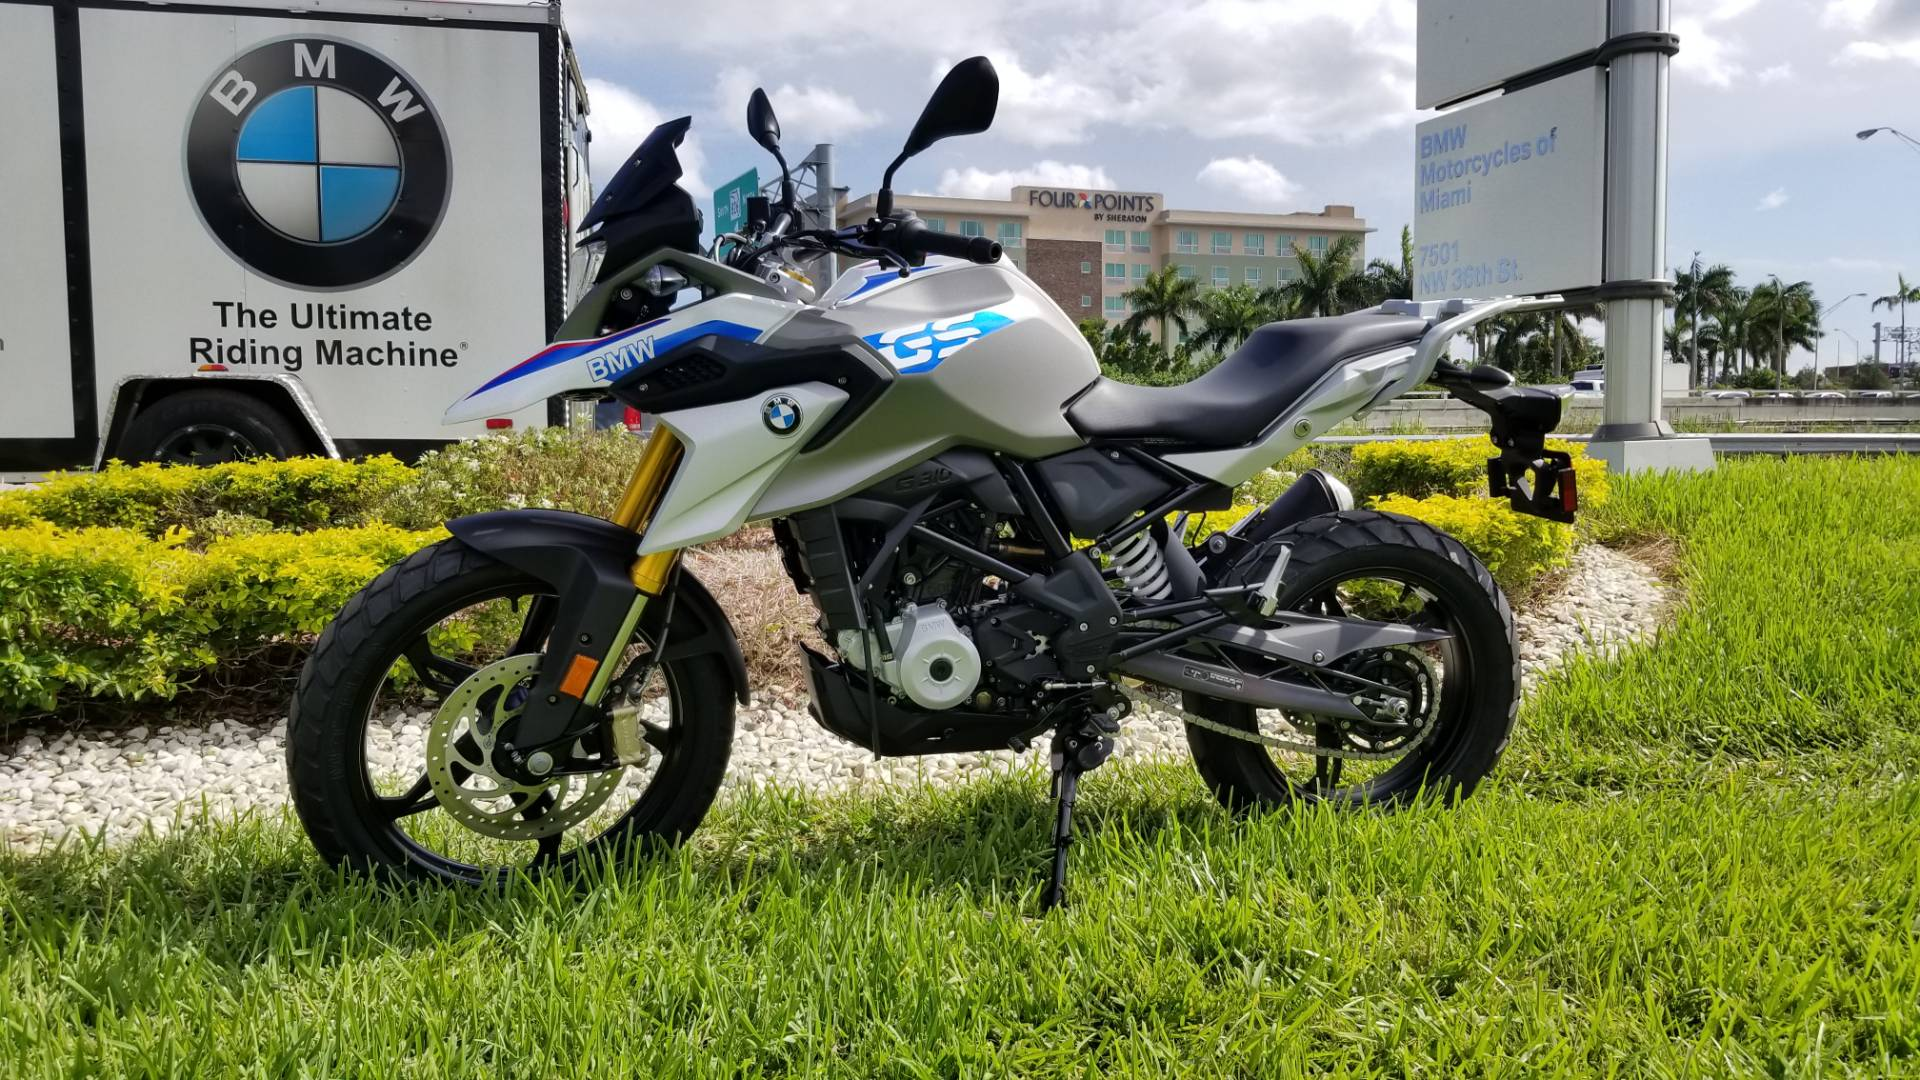 New 2019 BMW G 310 GS for sale, BMW G 310GS for sale, BMW Motorcycle G310GS, new BMW 310, Dual, BMW. BMW Motorcycles of Miami, Motorcycles of Miami, Motorcycles Miami, New Motorcycles, Used Motorcycles, pre-owned. #BMWMotorcyclesOfMiami #MotorcyclesOfMiami - Photo 5